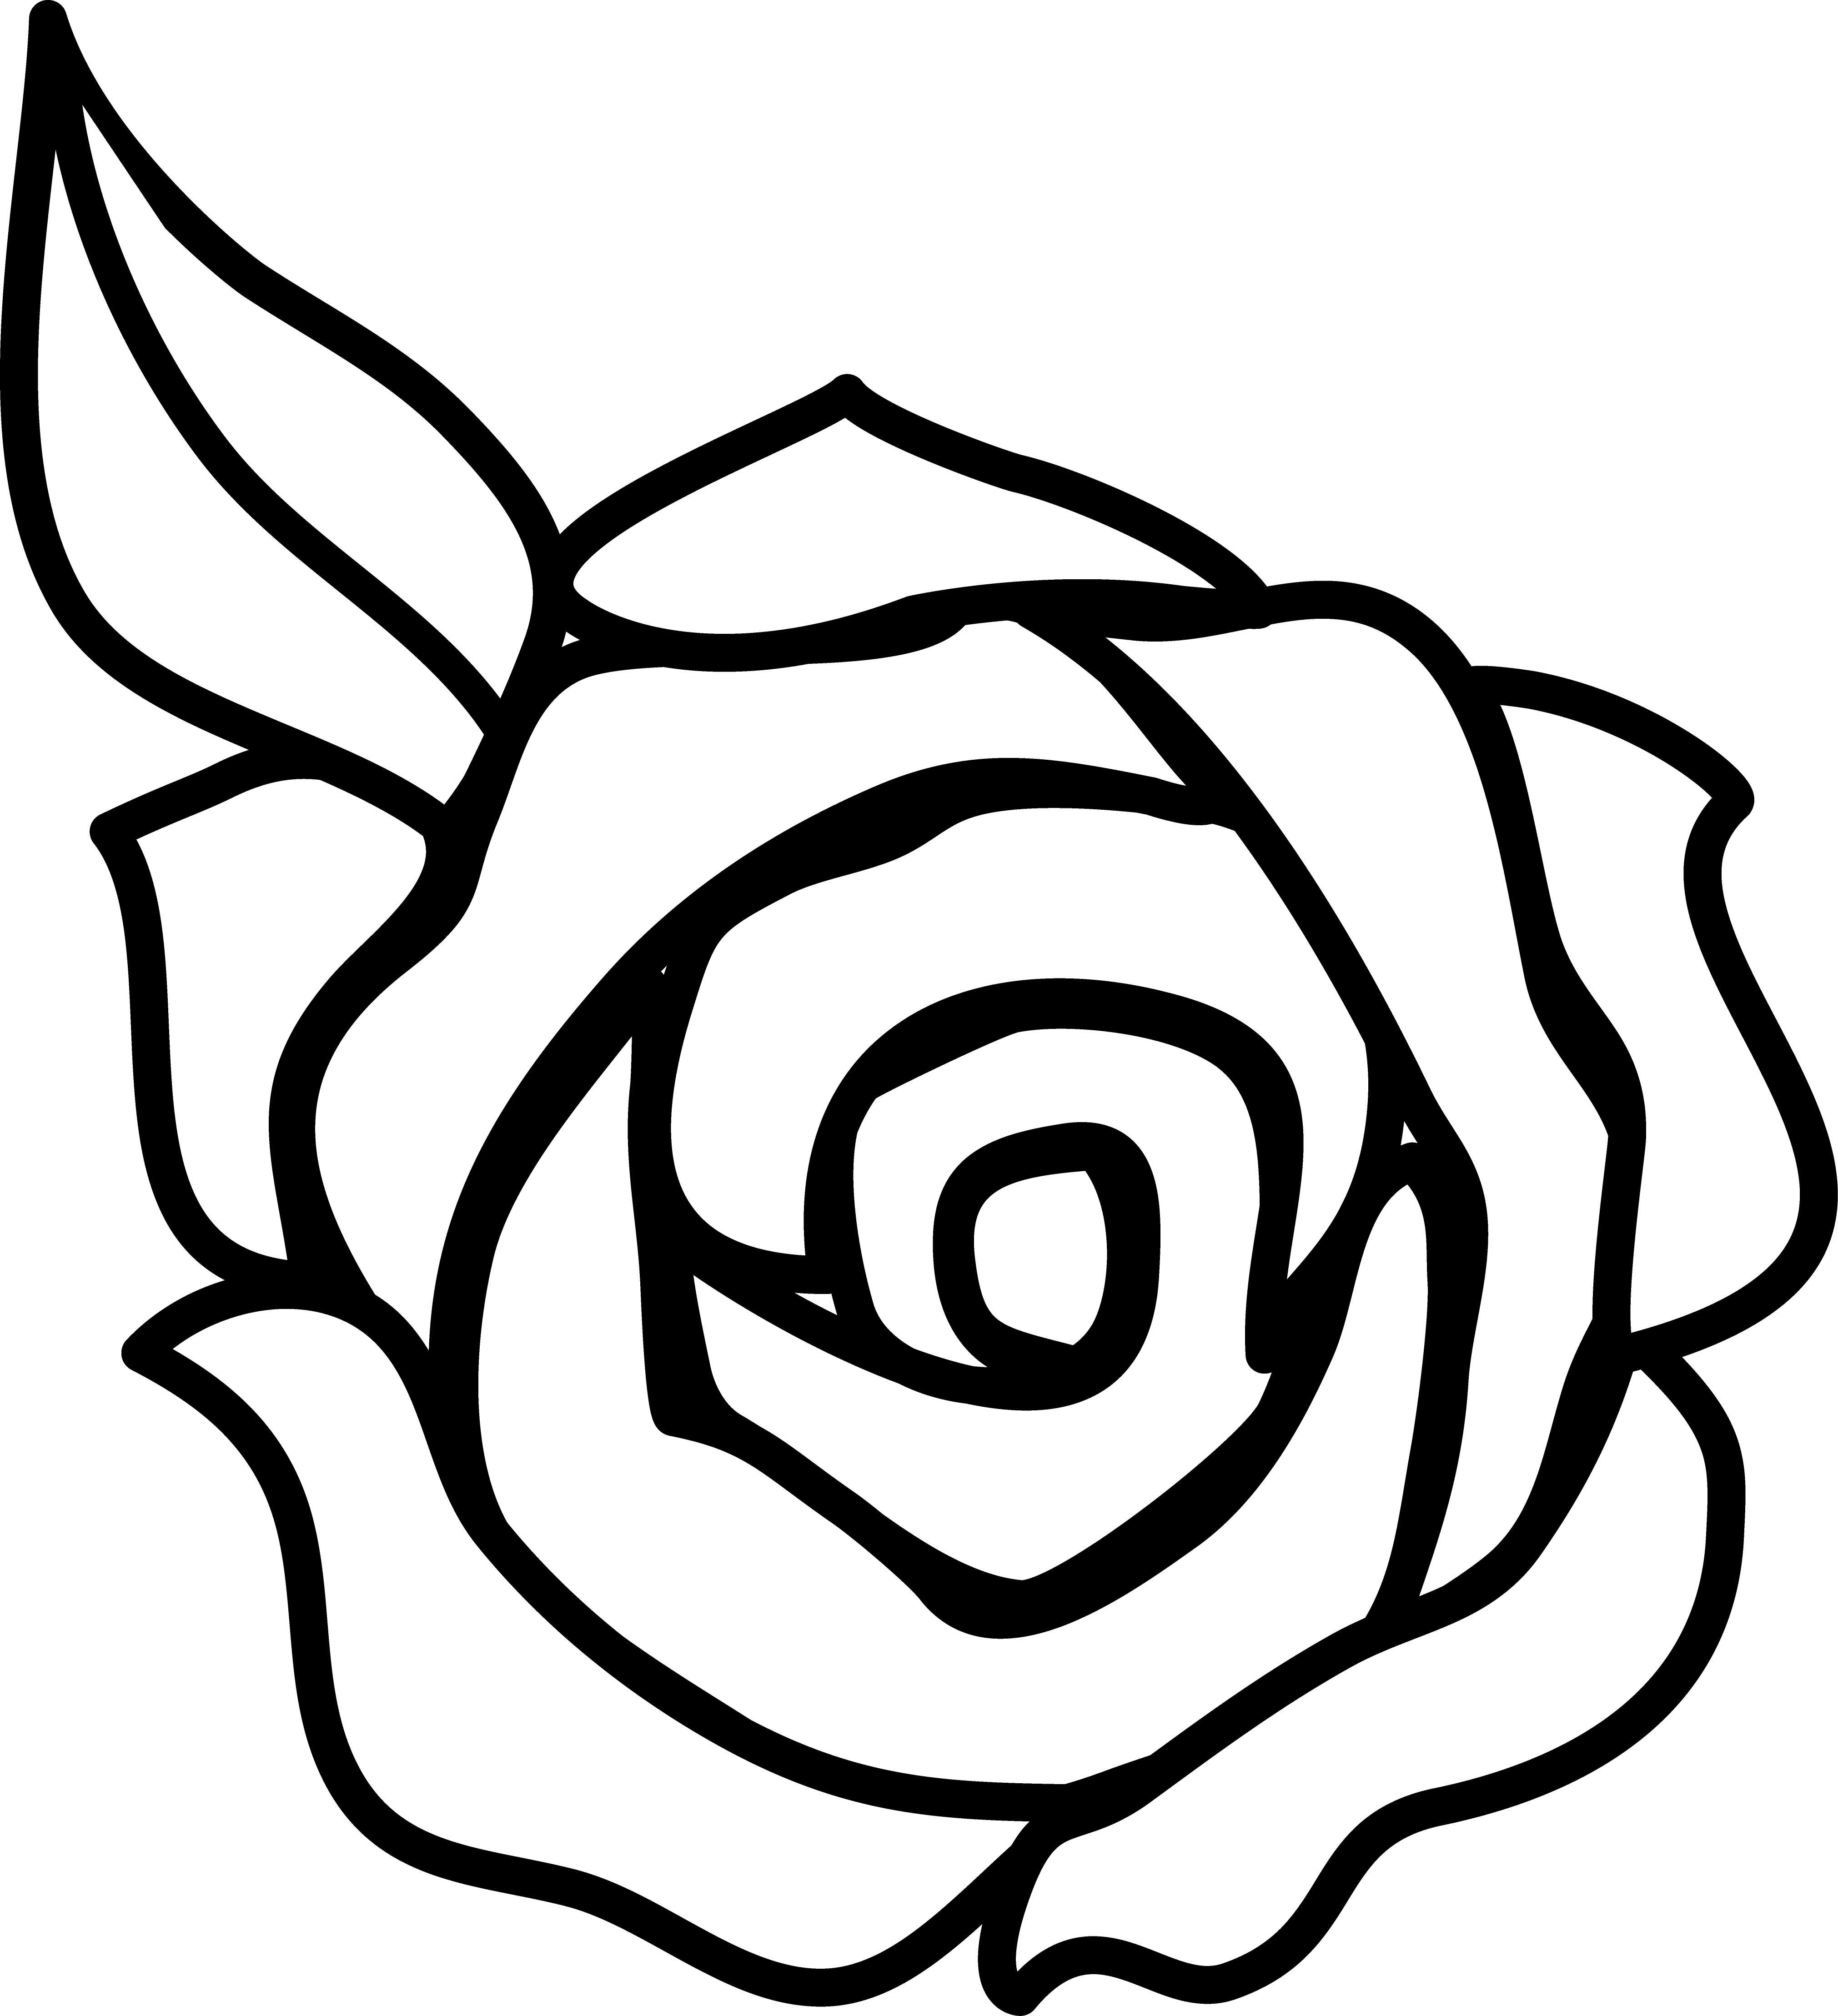 Roses rose clip art black and - Roses Clipart